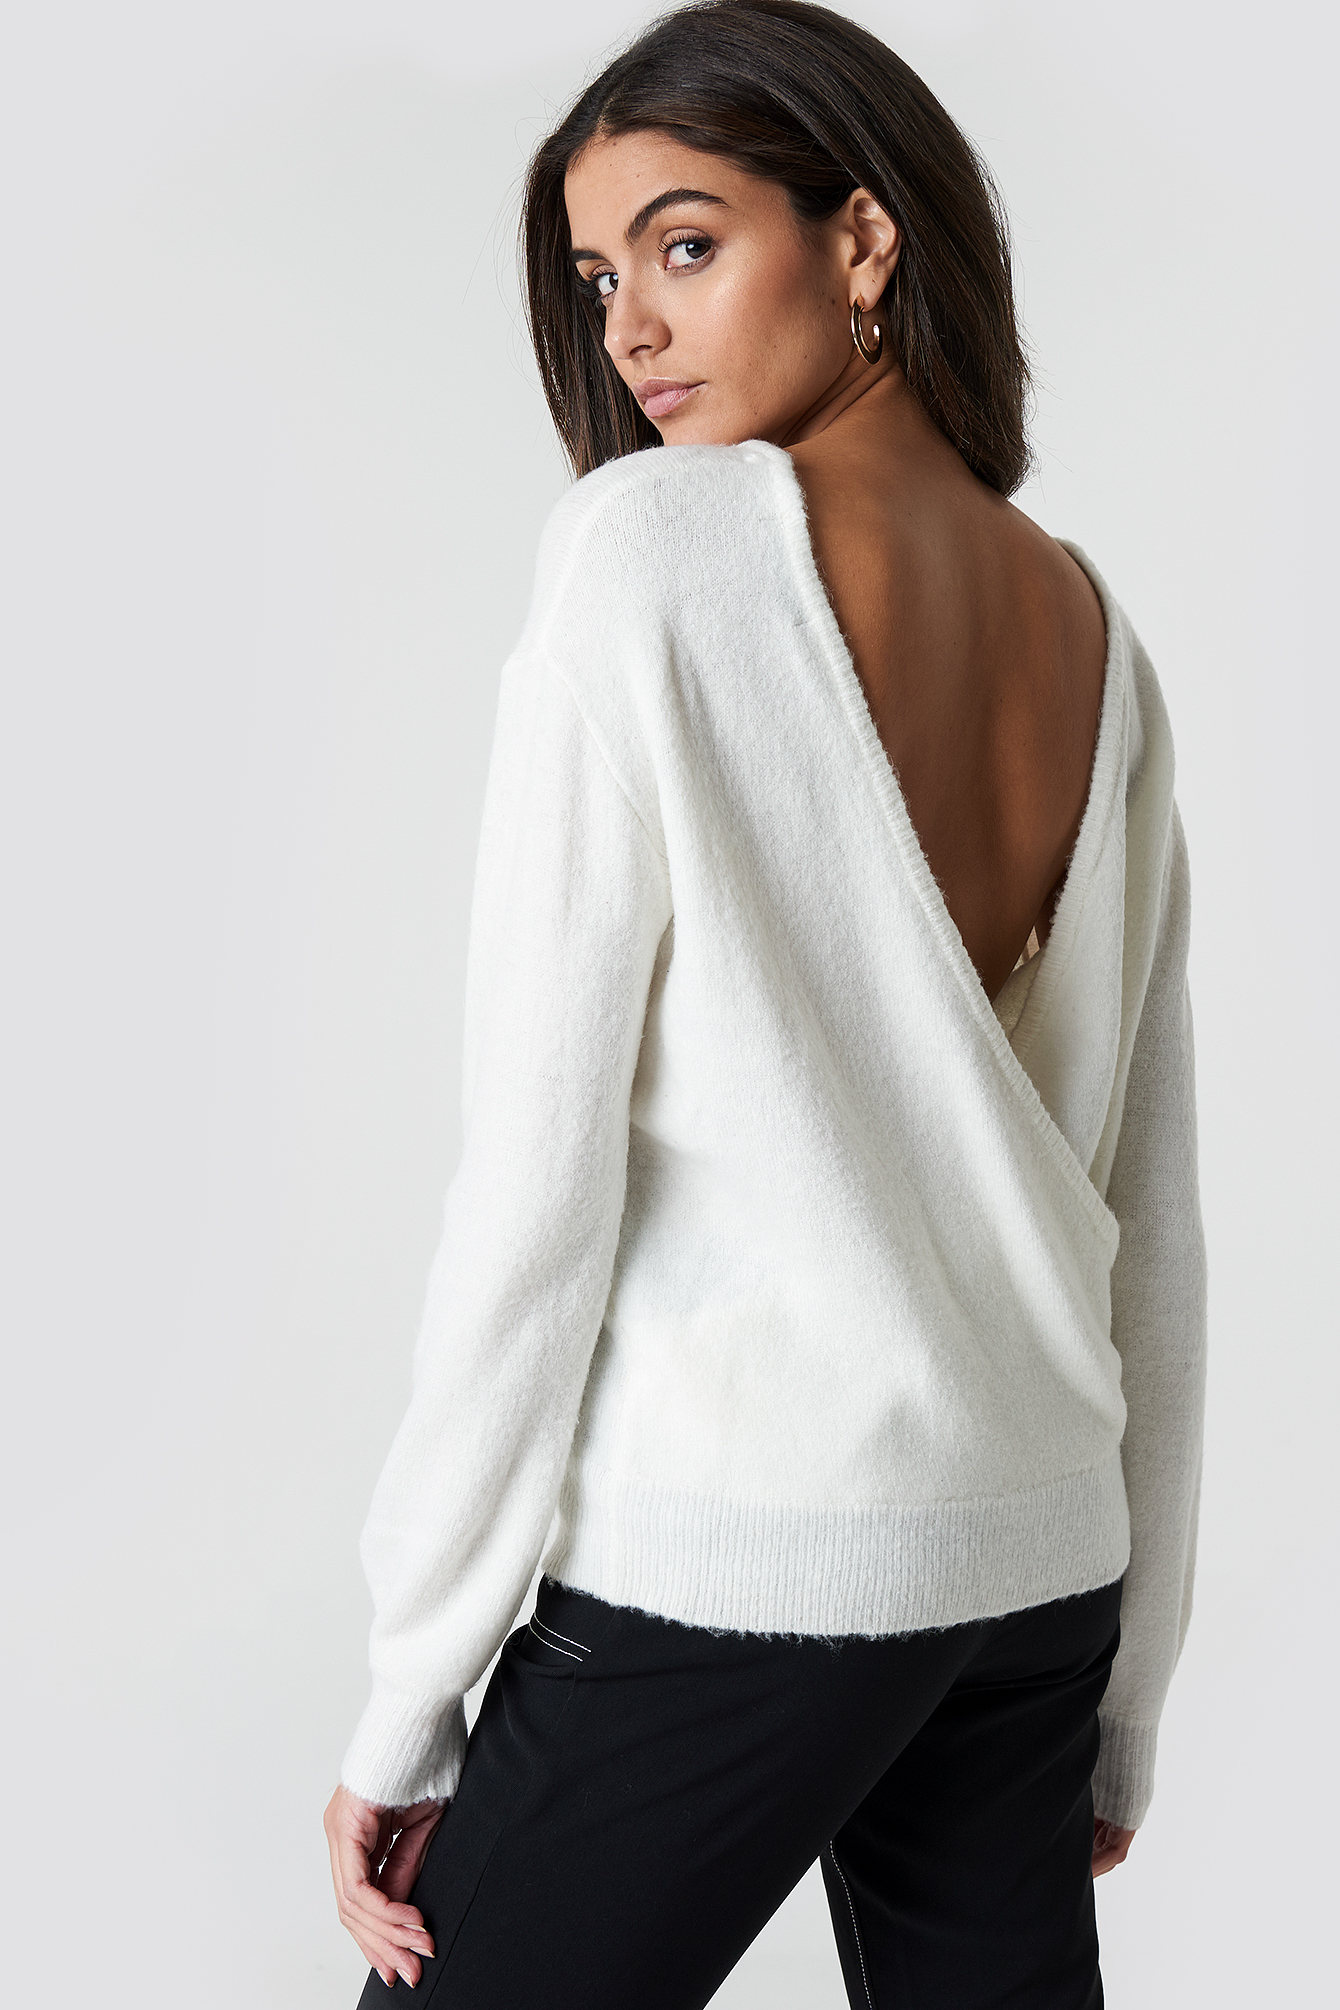 BACK OVERLAP KNITTED SWEATER - OFFWHITE